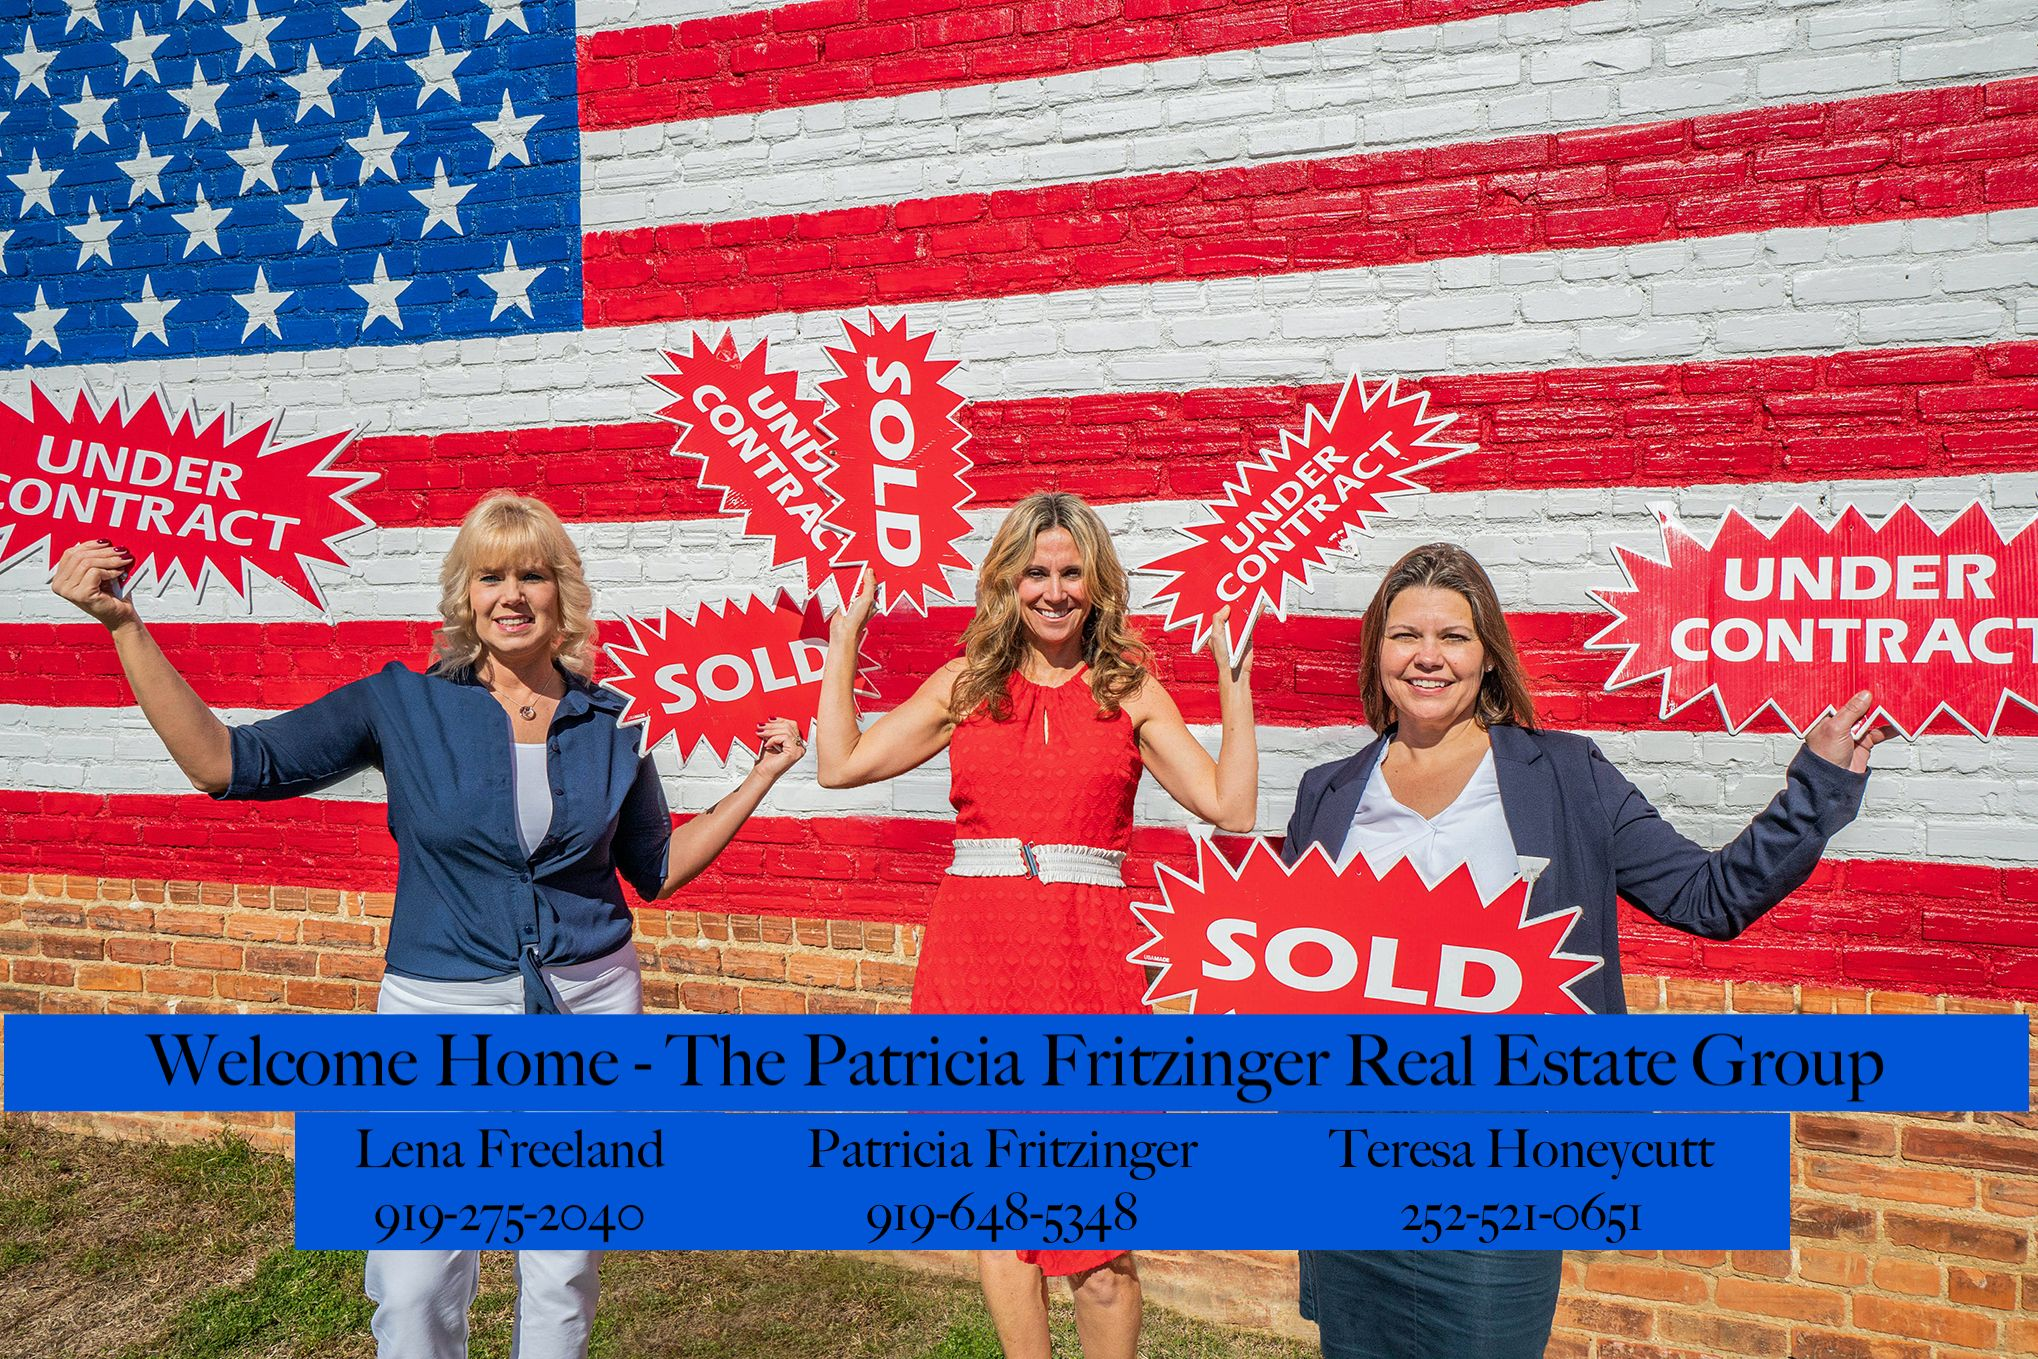 Welcome Home: The Patricia Fritzinger Real Estate Group